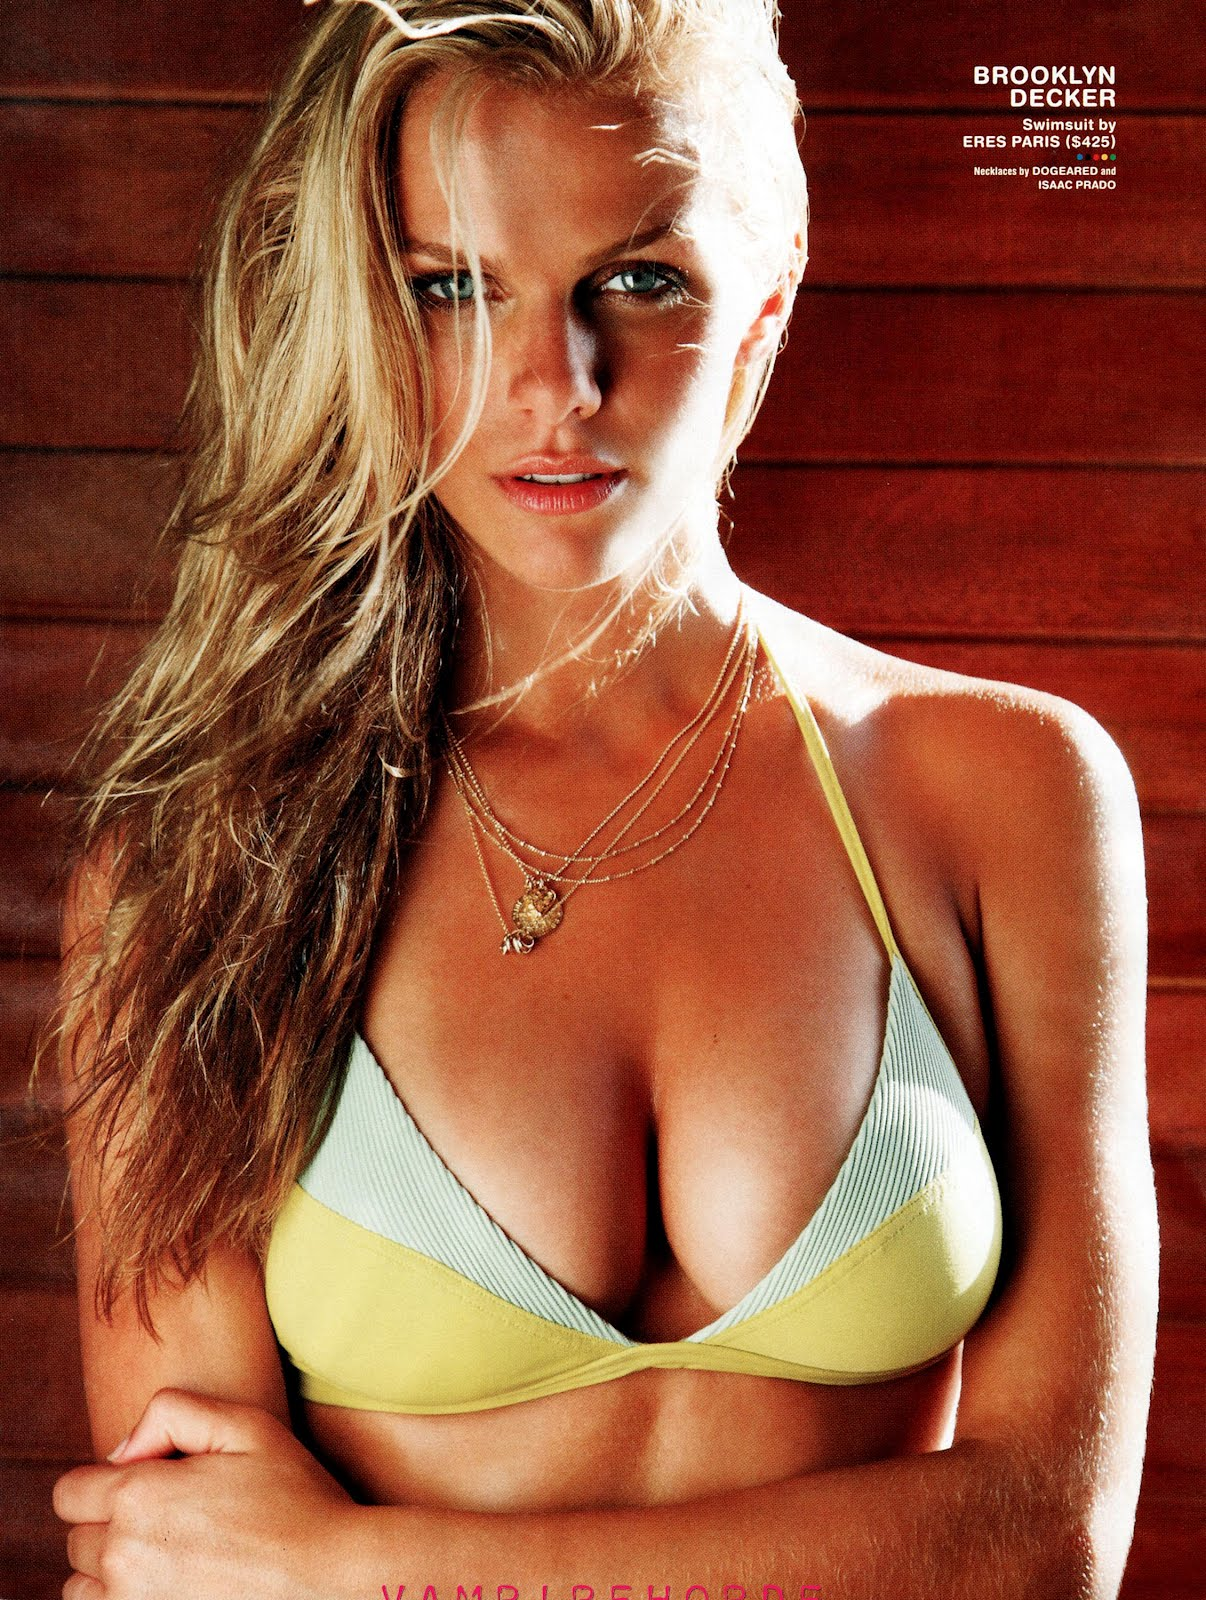 http://2.bp.blogspot.com/-ETcrajr2mS0/T0PmVTC3hKI/AAAAAAAABTc/f2yWIpNlQFs/s1600/brooklyn-decker-sports-illustrated-swim-2010-scann.jpg